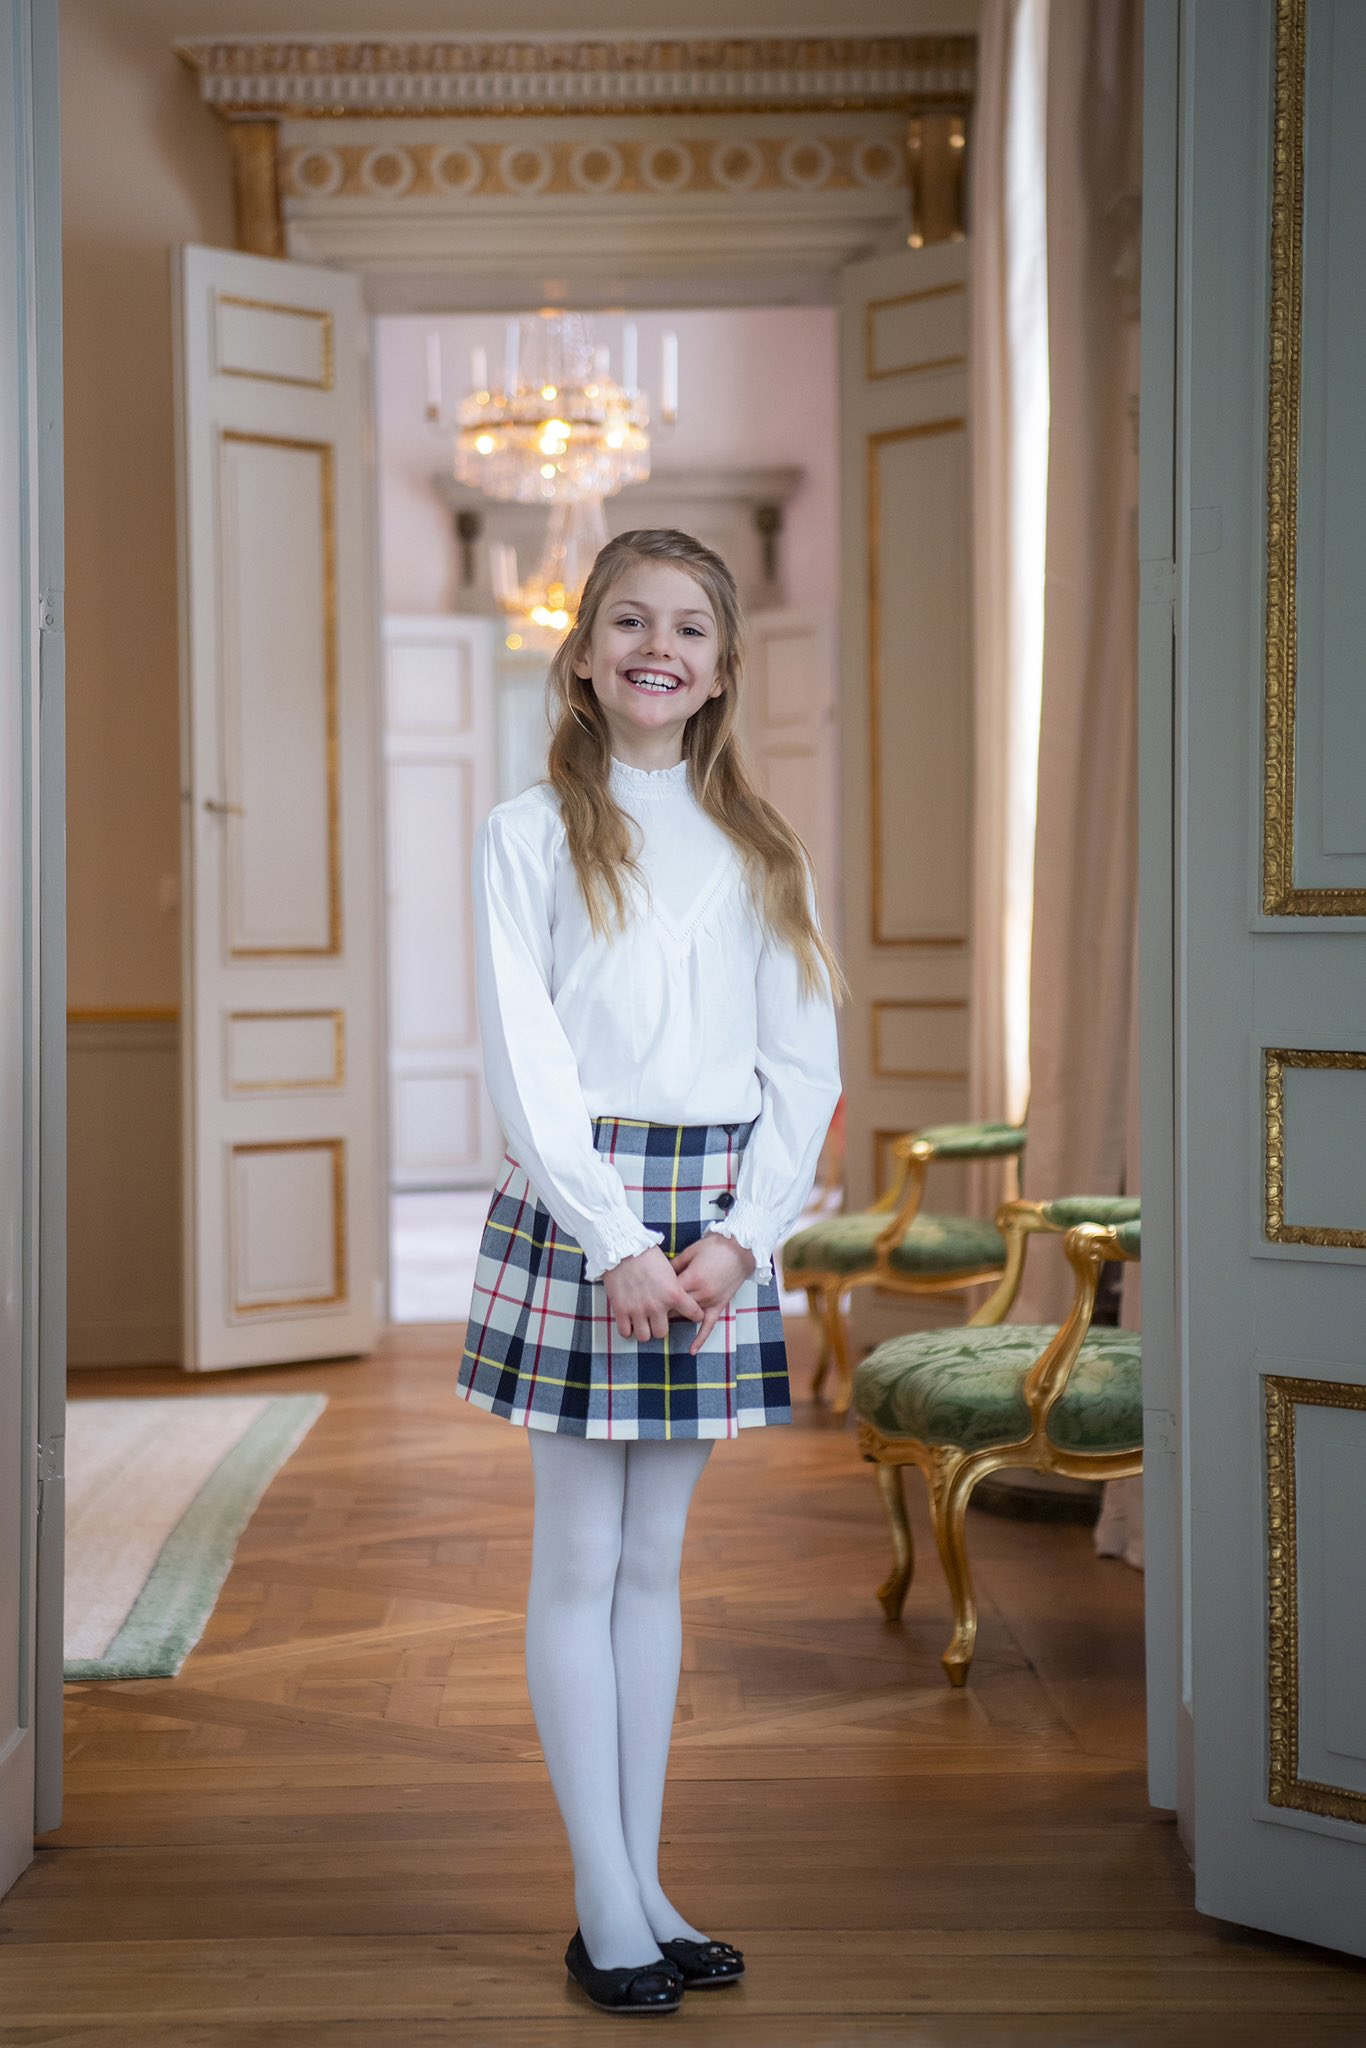 New Birthday Pictures of Princess Estelle of Sweden to mark her 9th birthday